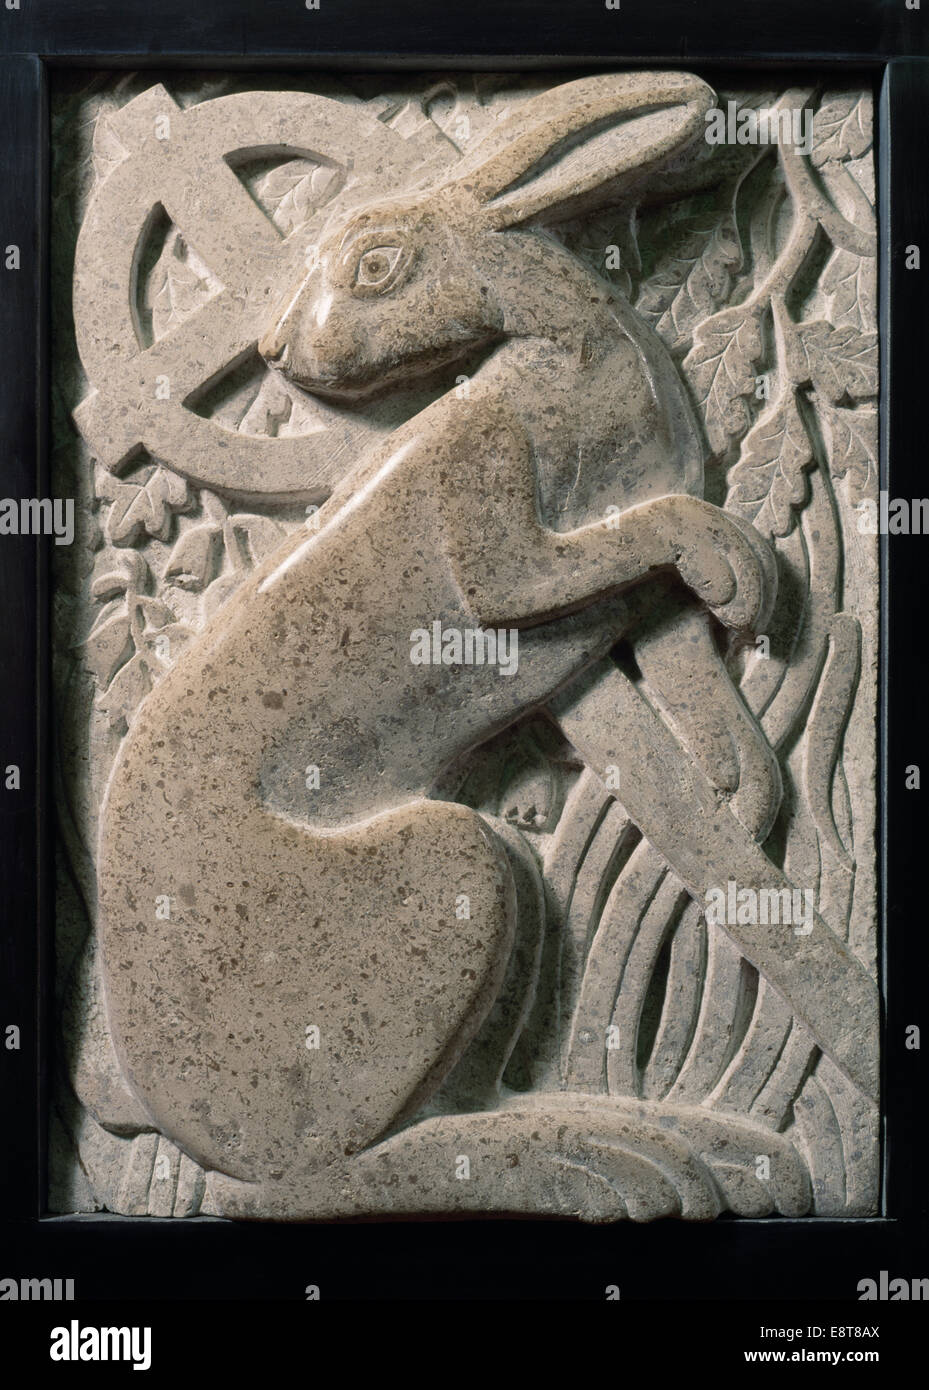 Modern stone carving of hare with celtic cross oak